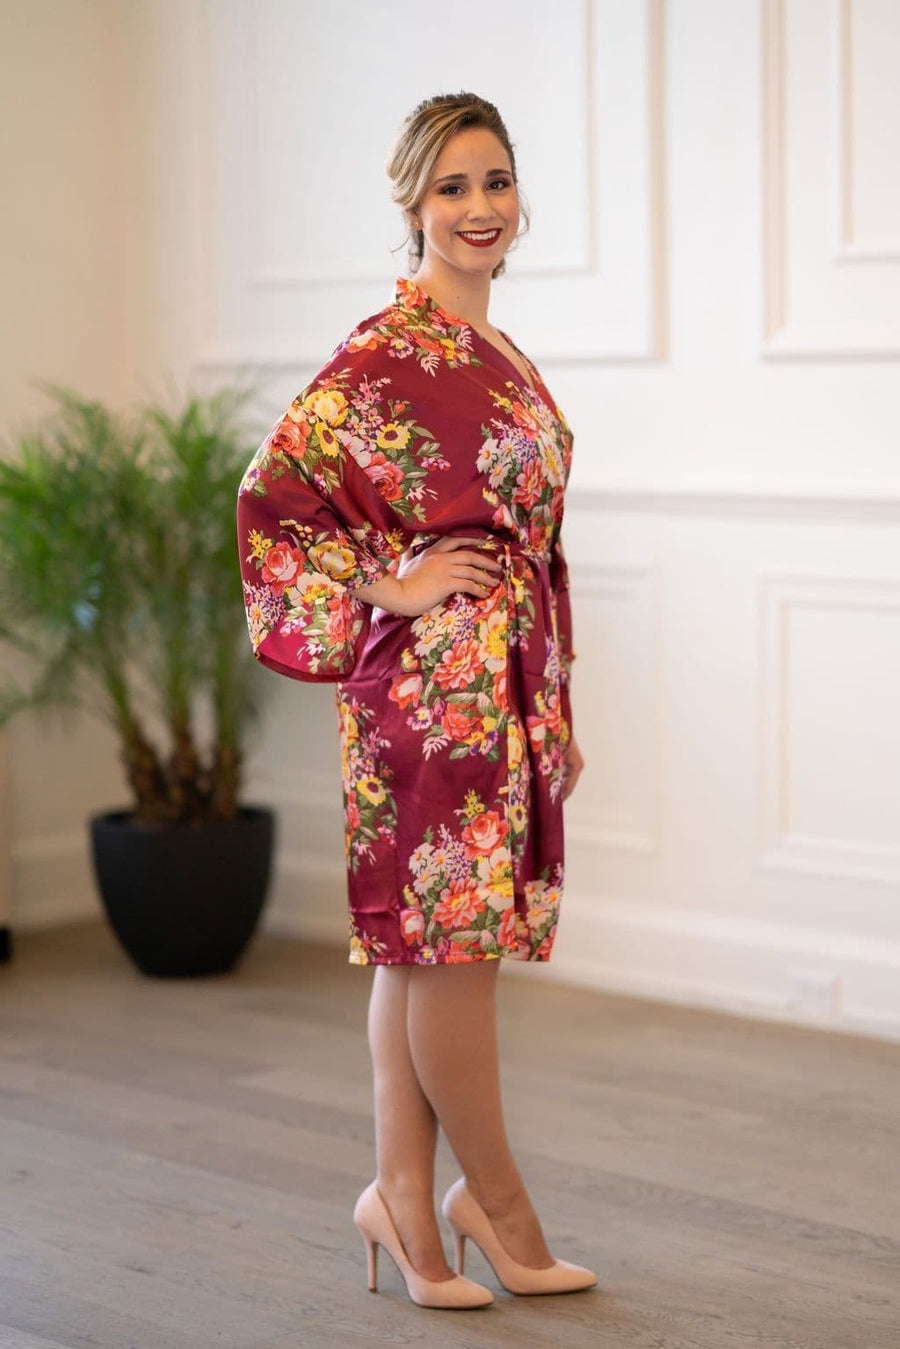 Bridesmaid Dresses - Burgundy Floral Bridal Robes - BridesMade